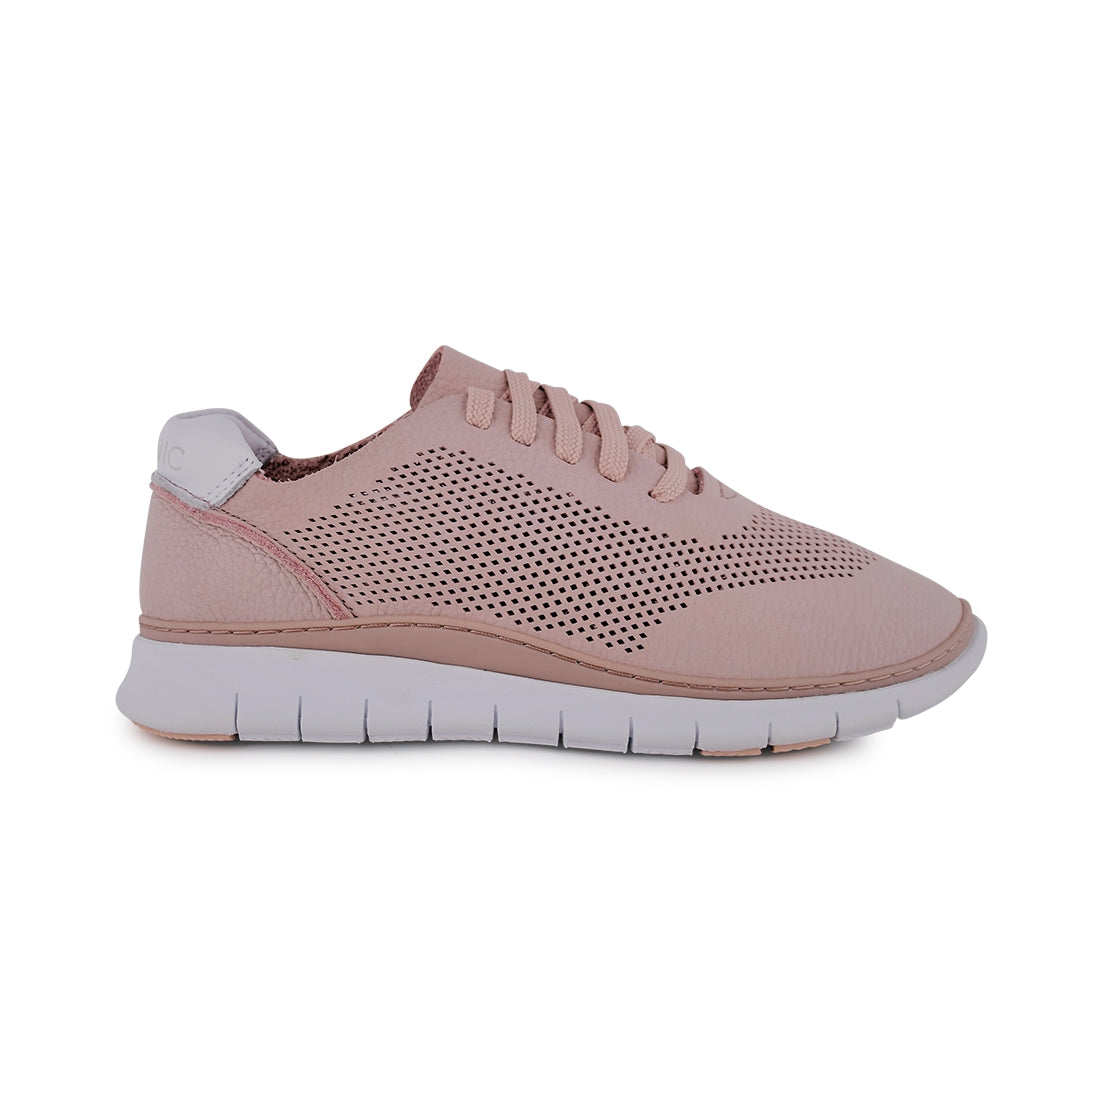 JOEY - Vionic Lace Up Dusty Pink